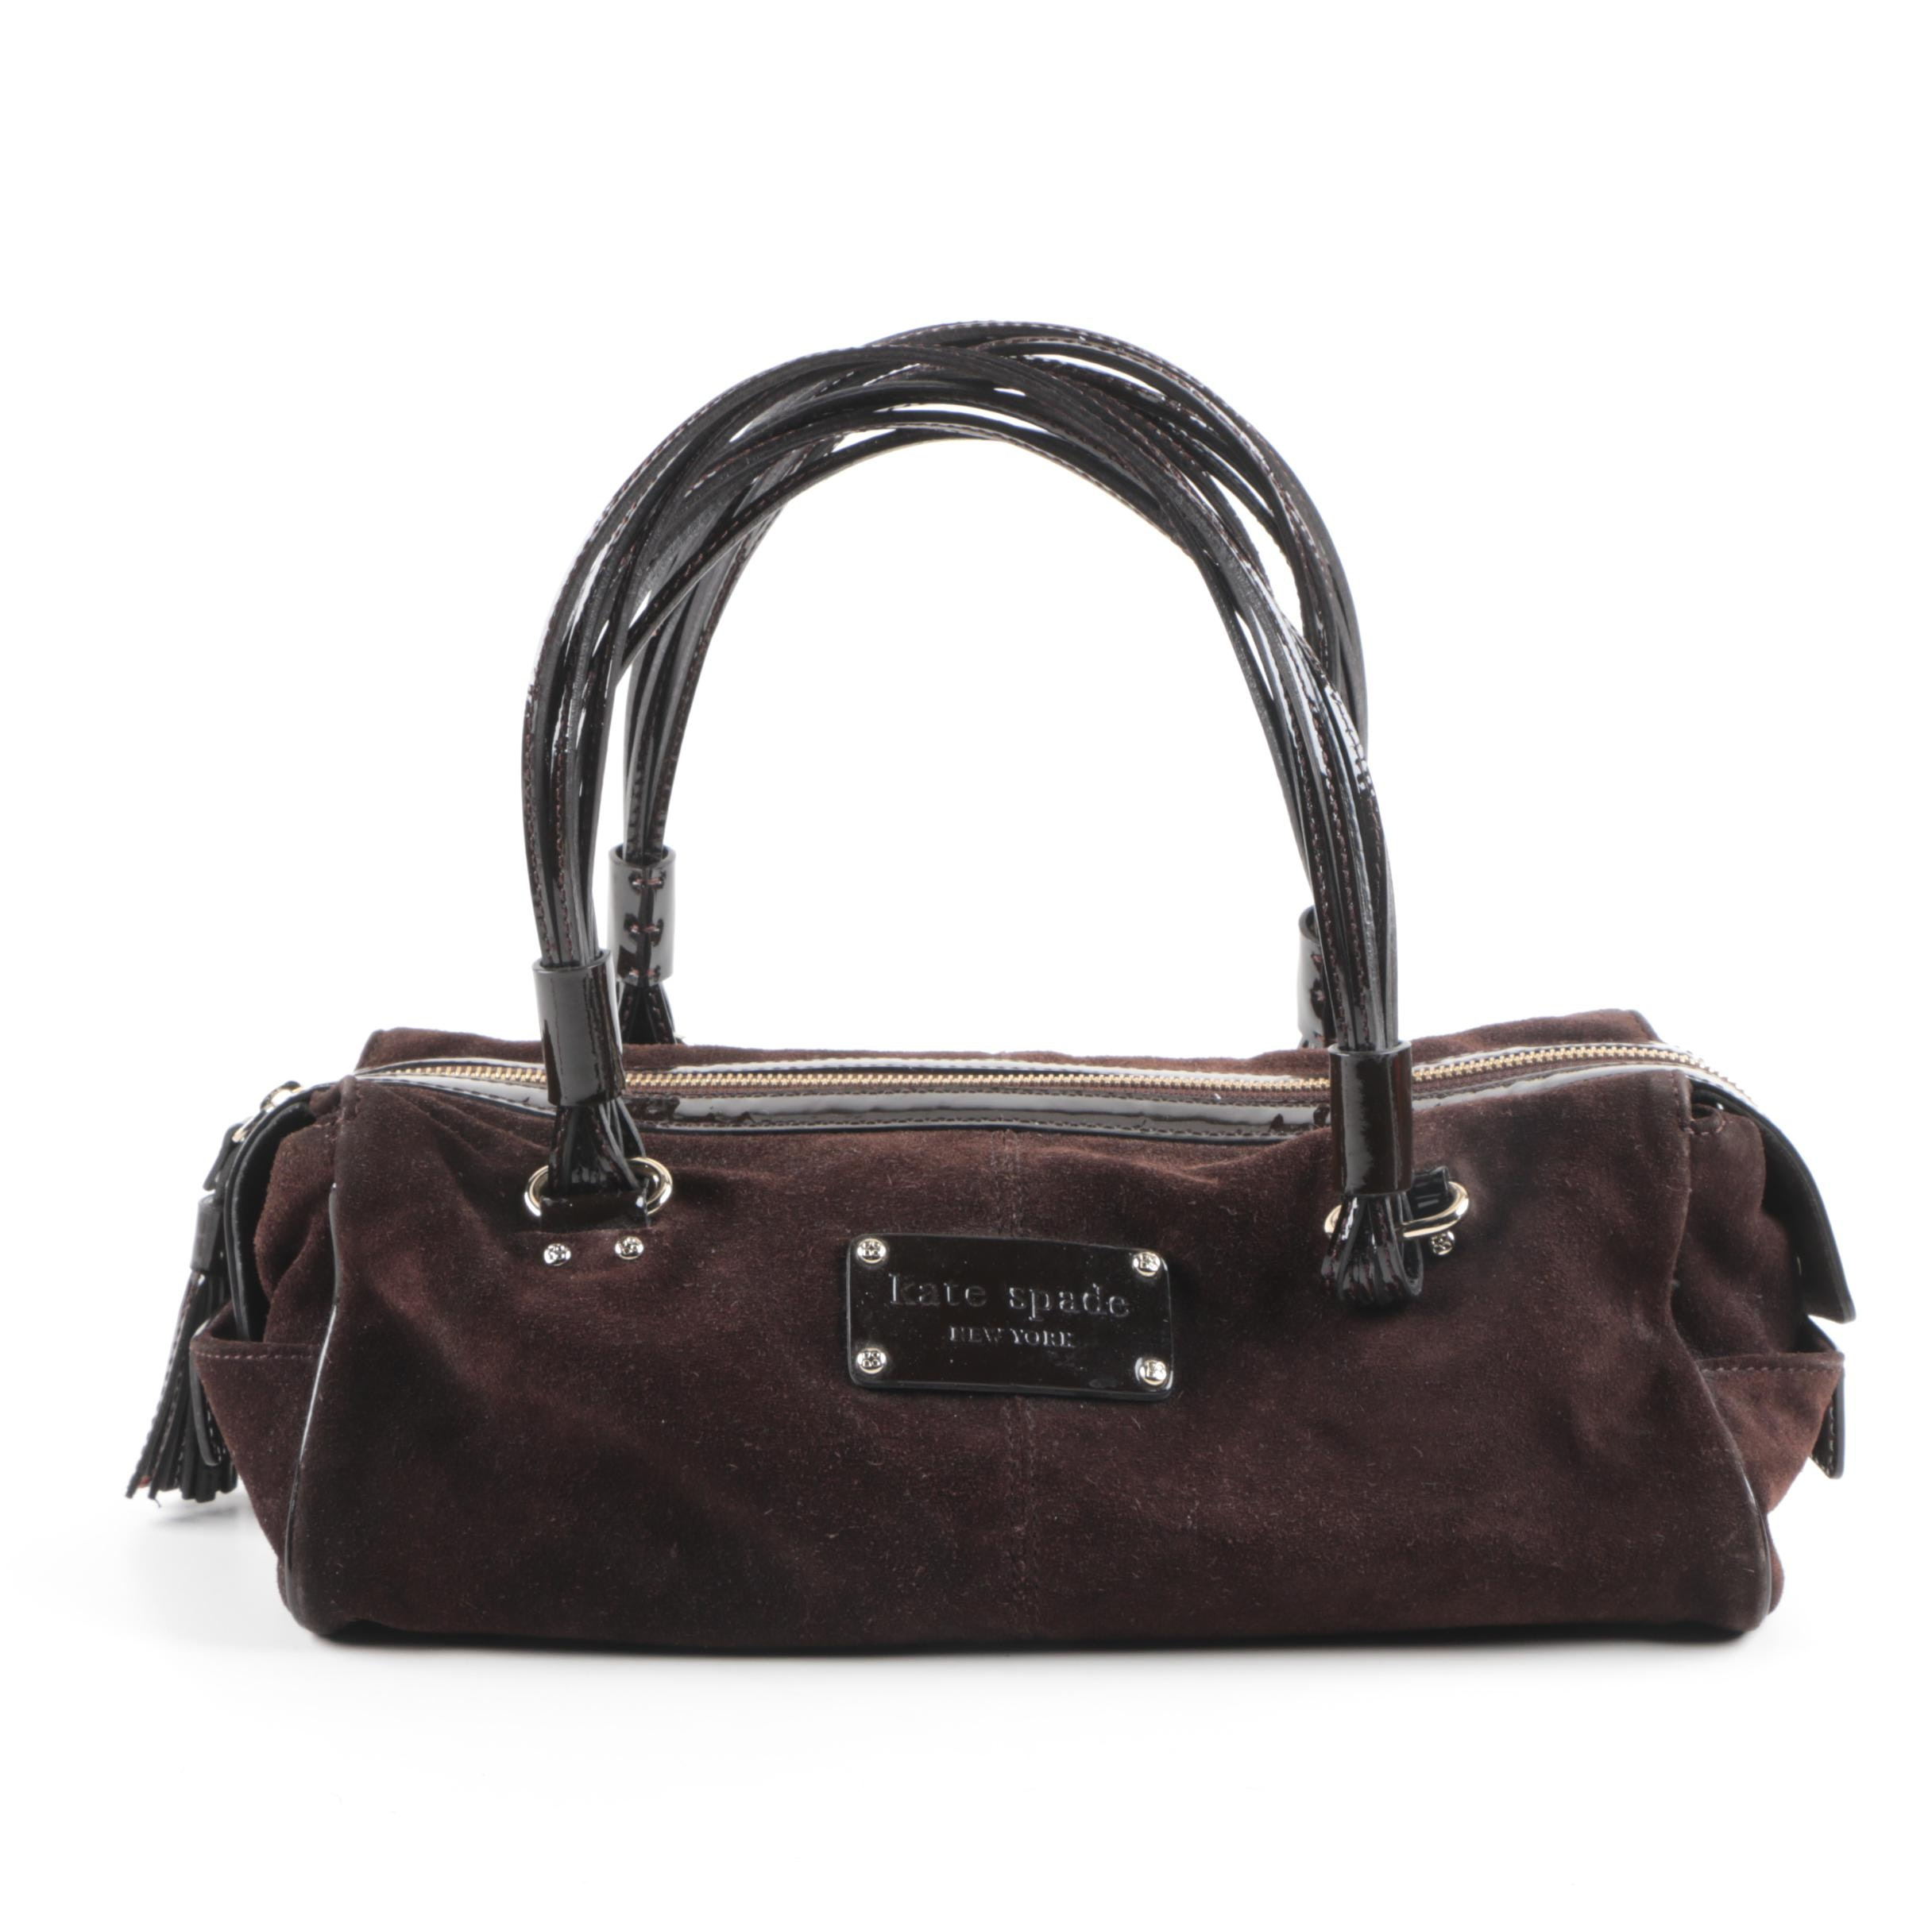 Kate Spade New York Brown Suede Shoulder Bag